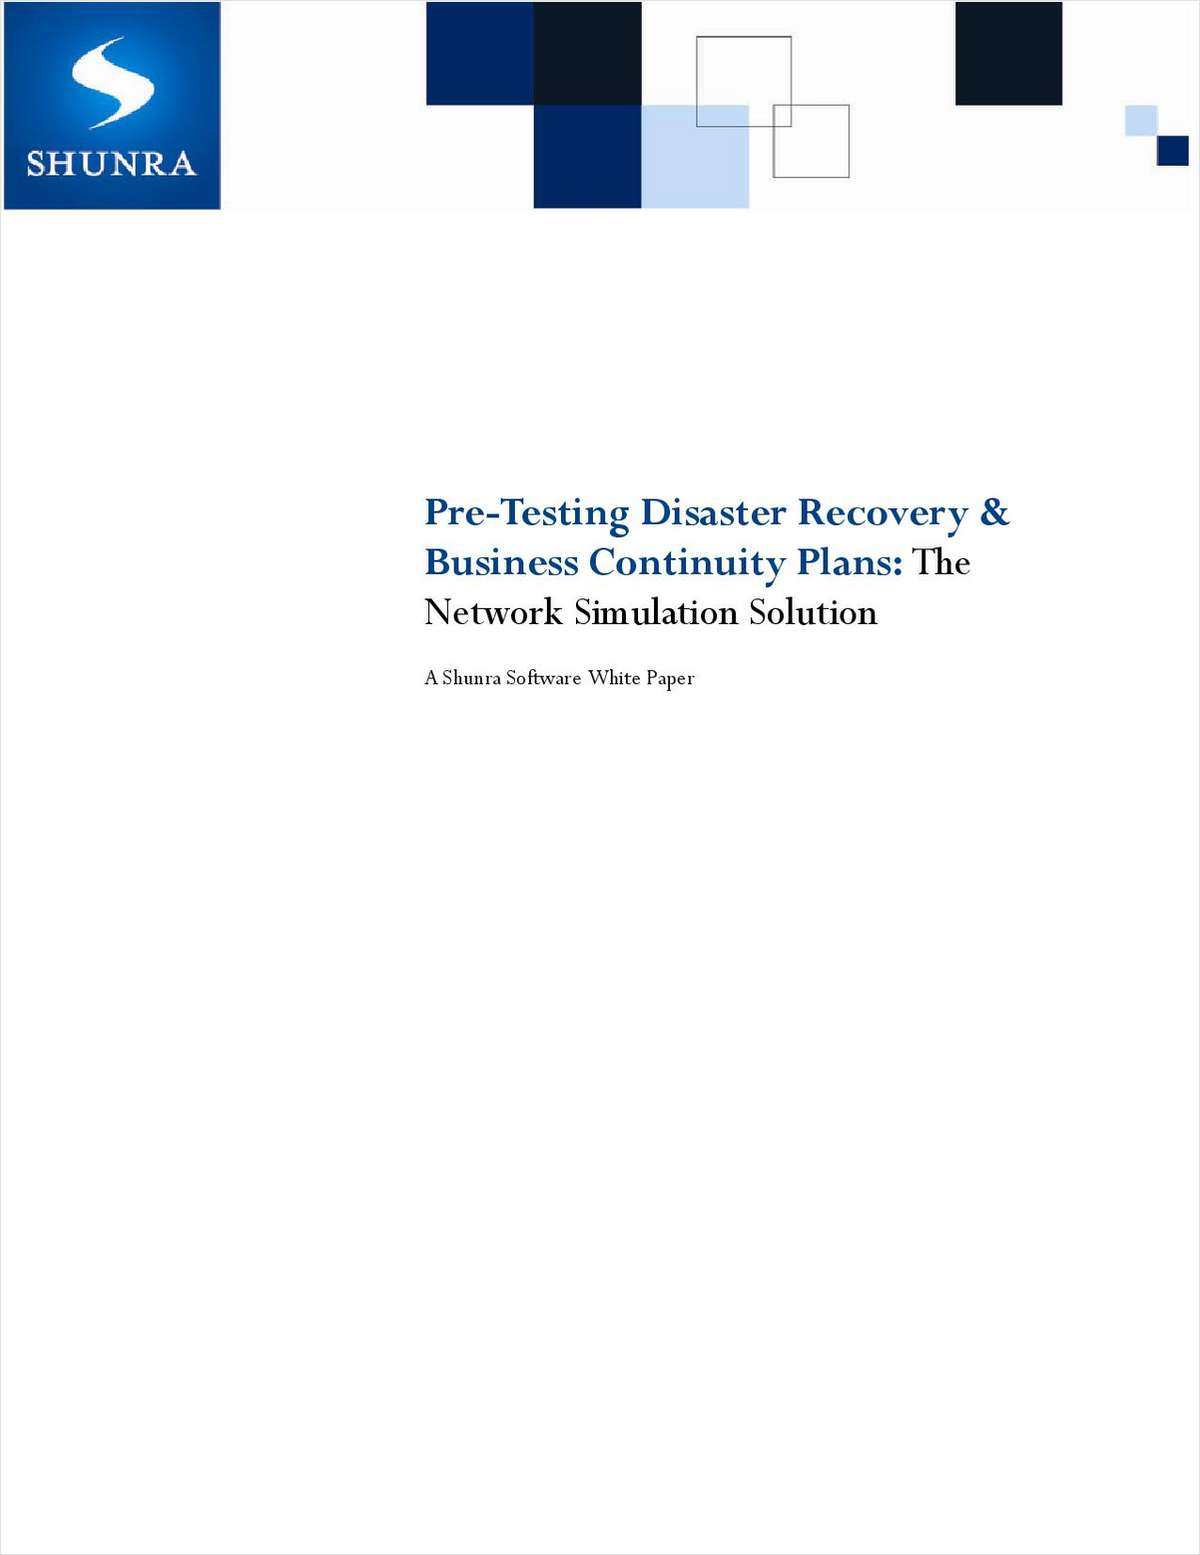 Pre-Testing Disaster Recovery & Business Continuity Plans: The Network Simulation Solution